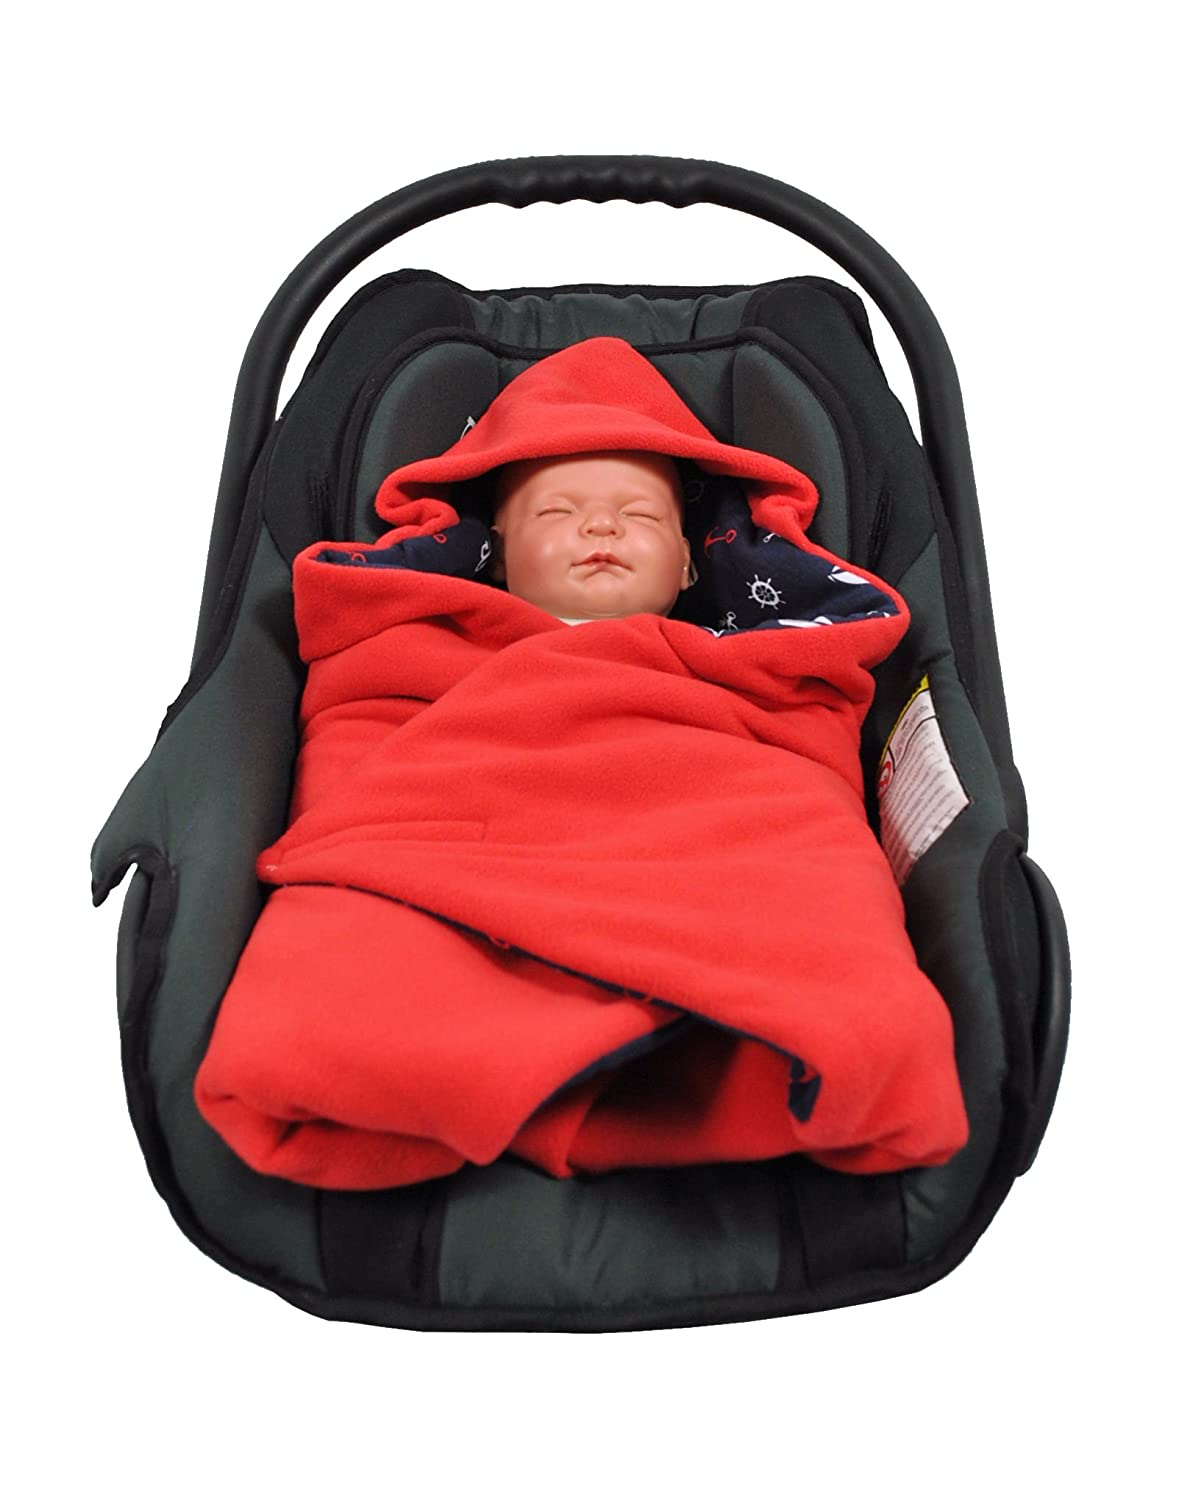 Small, Red Marine HOBEA Baby Seat Wrap Blanket